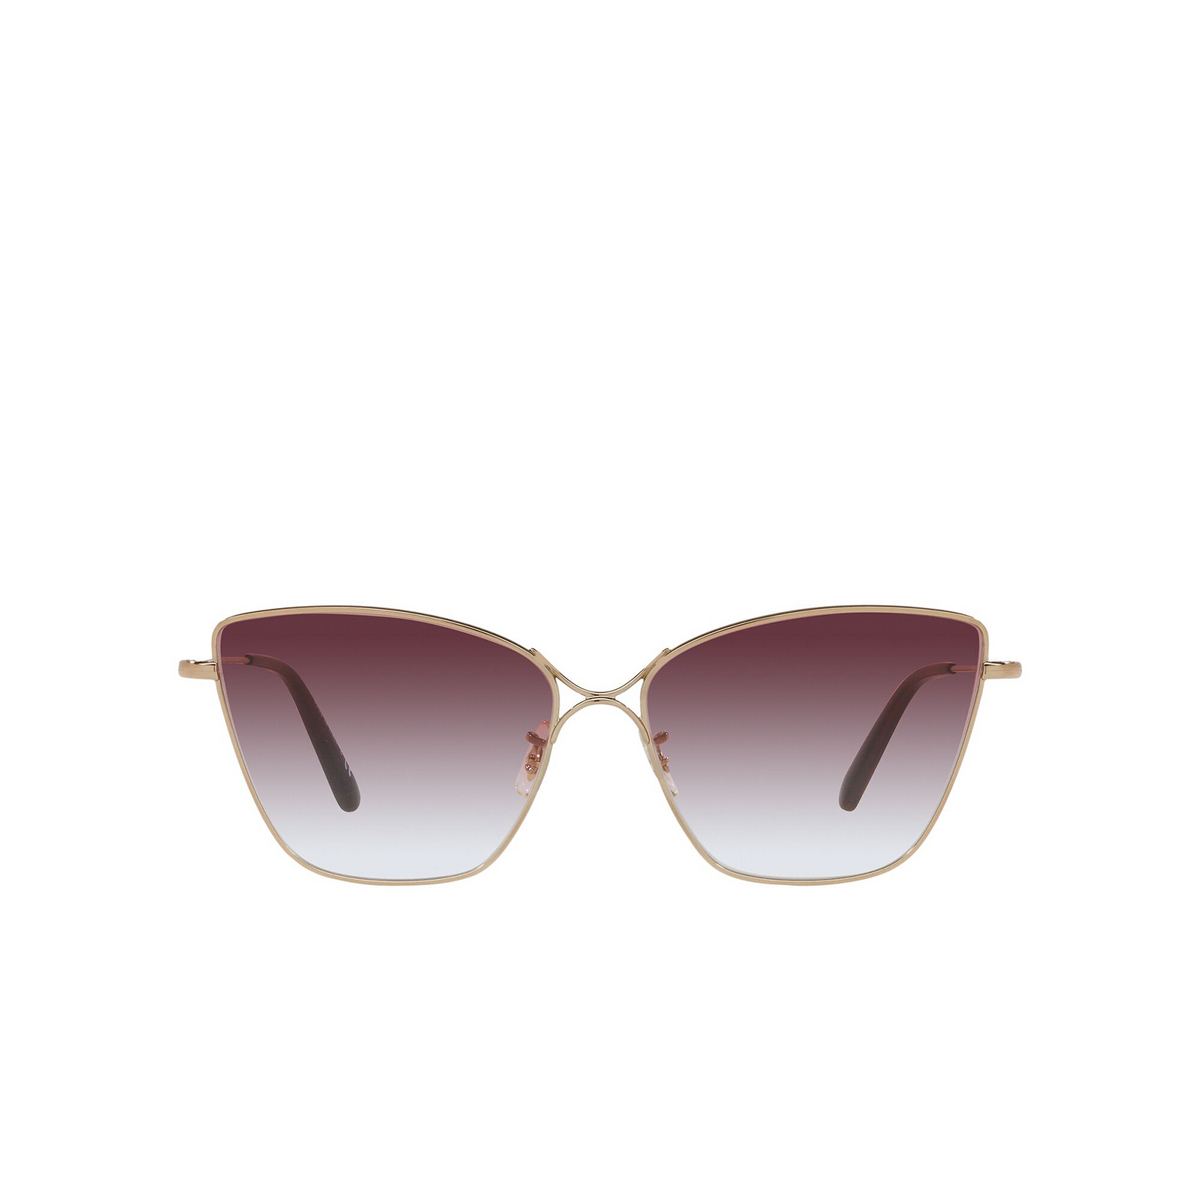 Oliver Peoples® Butterfly Sunglasses: Marlyse OV1288S color Rose Gold 50378H - front view.